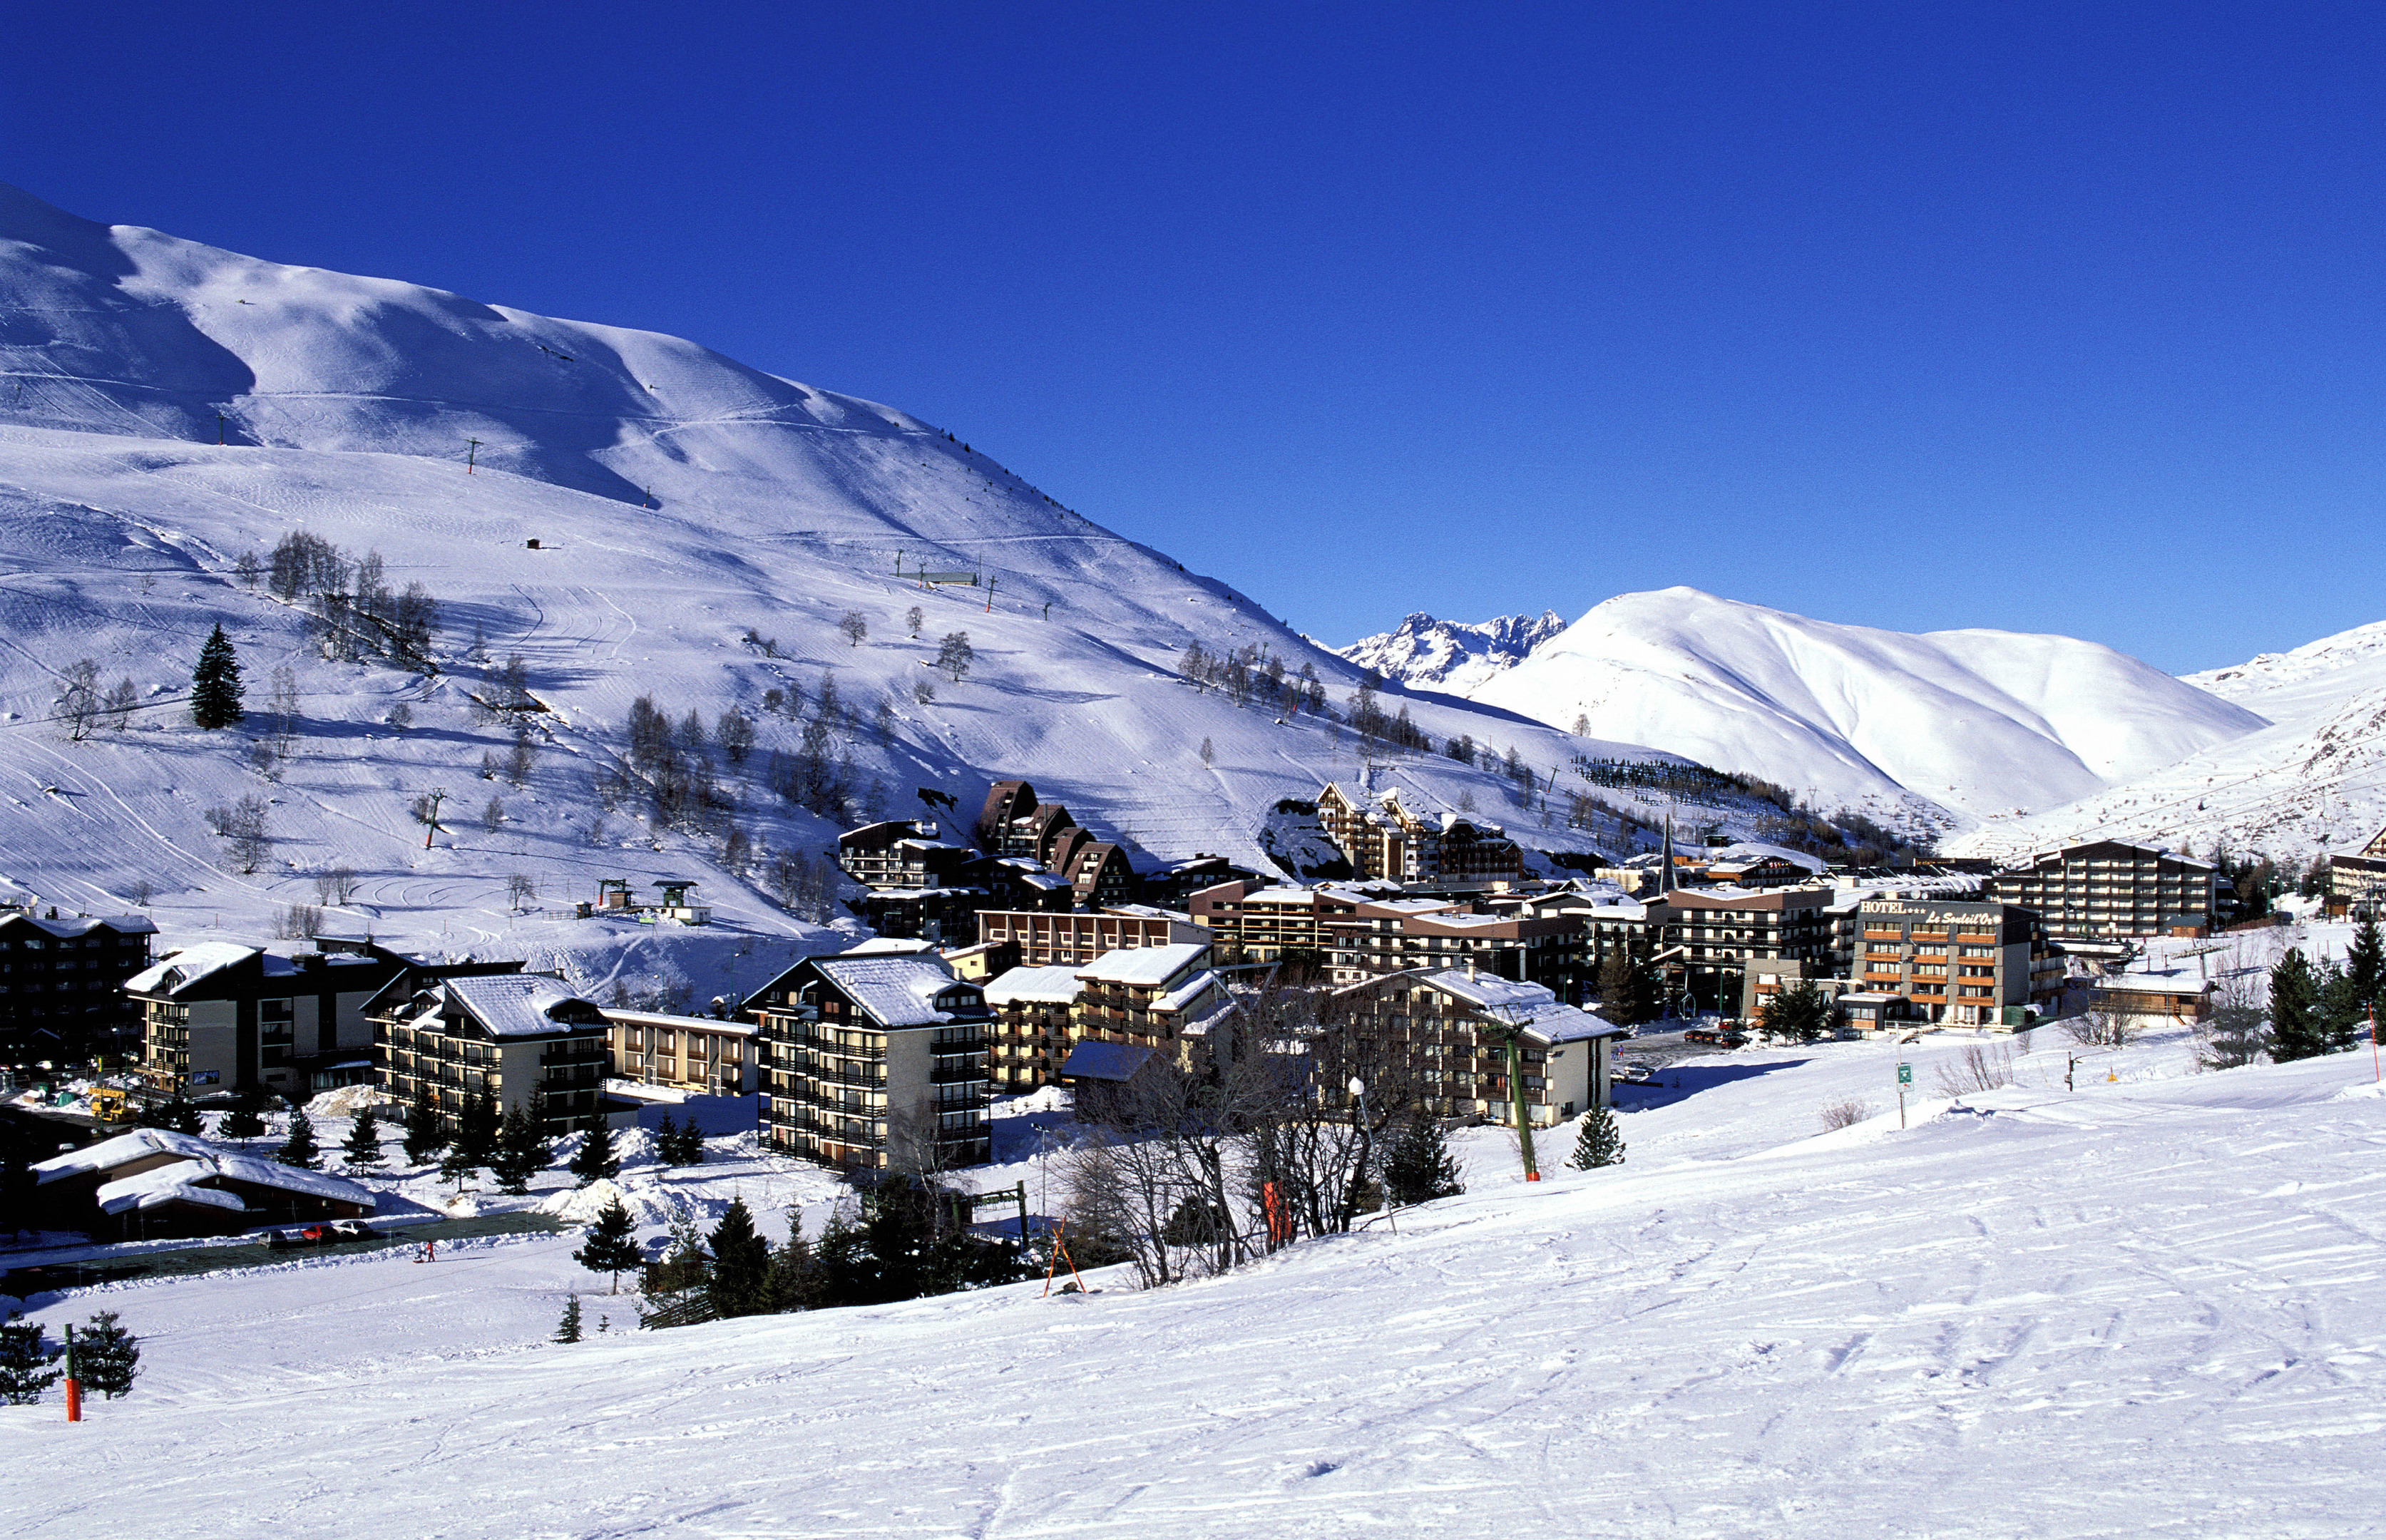 France, Isere, Les Deux Alpes ski resort in the heart of the Oisans massif (Alamy Stock Photo)